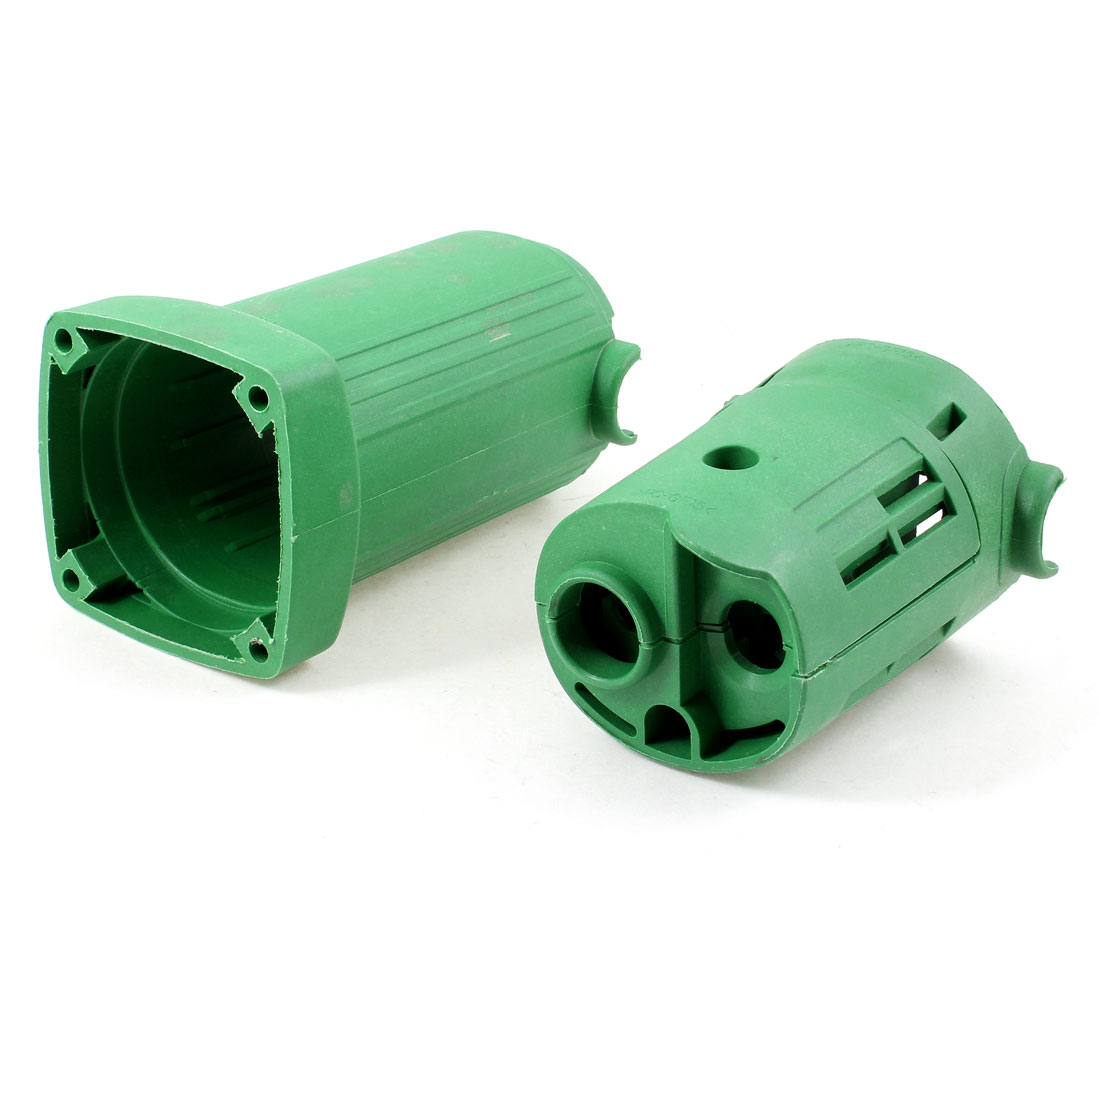 Spare Parts Plastic Head Crust Shell Cover Green for Hitachi Electric Hammer